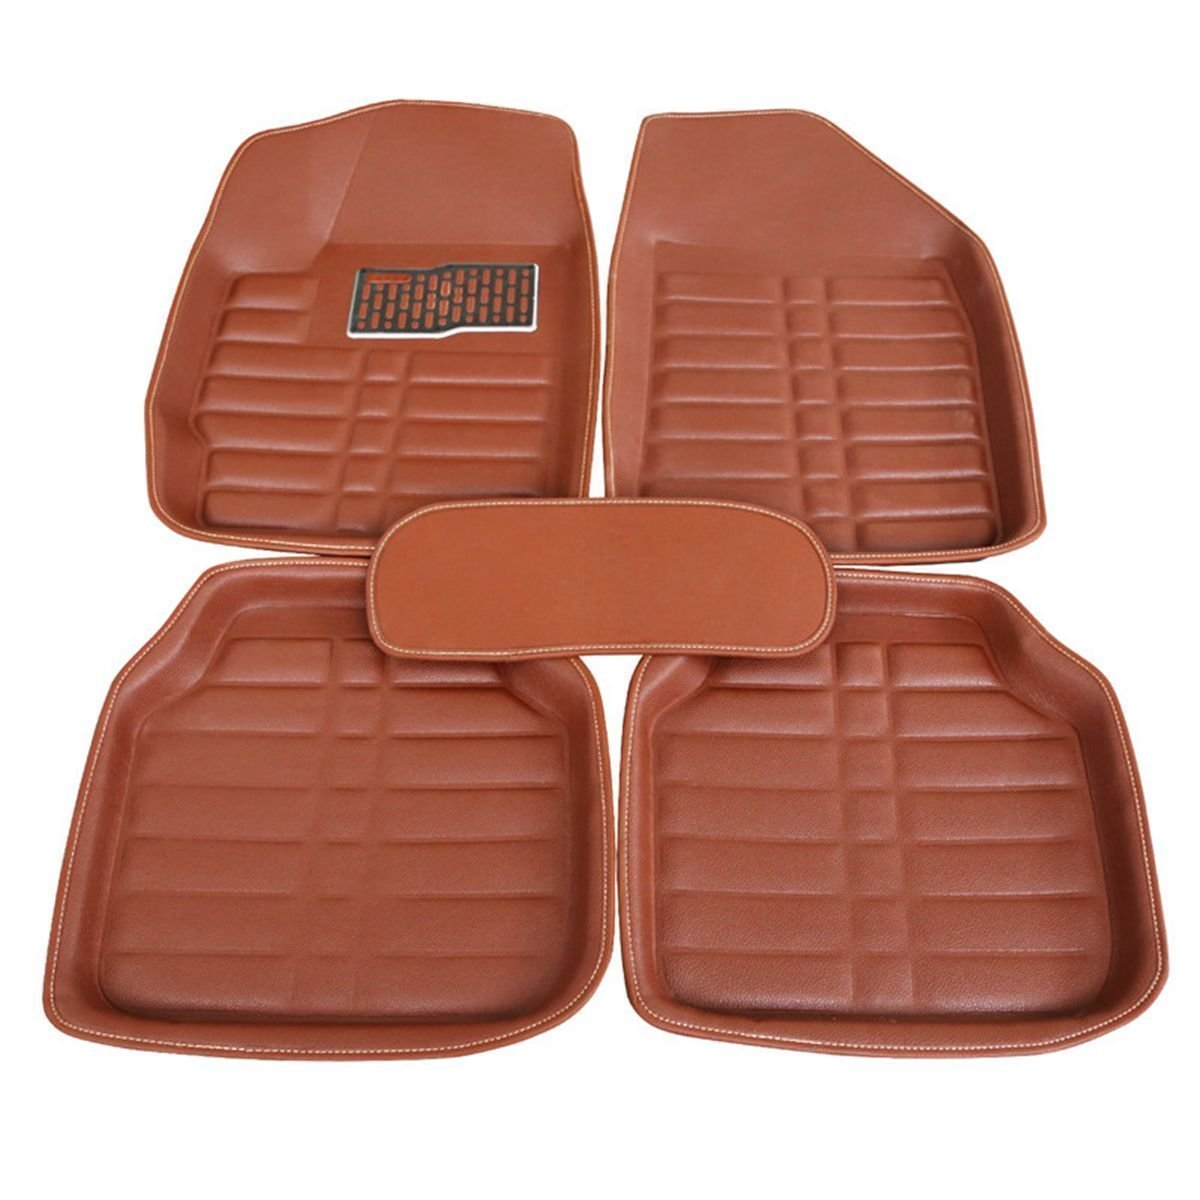 FLY5D® 5Pcs Universal Auto All Weather Car Floor Mats Front & Rear Carpet Waterproof